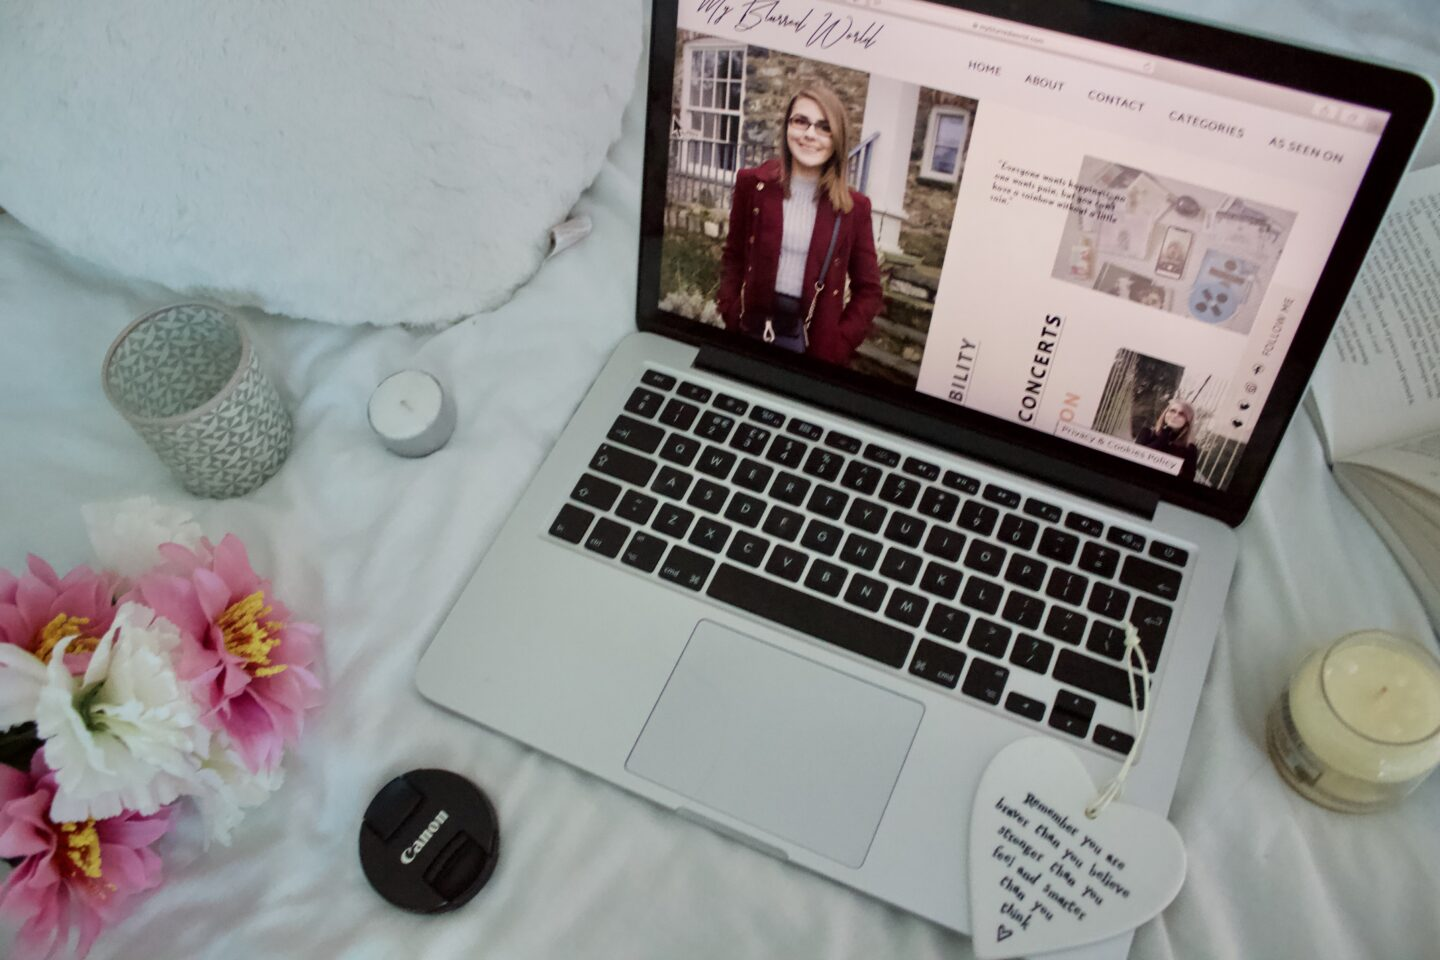 My Blurred World's homepage showing on an open laptop screen, the laptop is surrounded by miscellaneous items such as a couple of candles, a heart shaped hanging ornament, fake flowers and an open book